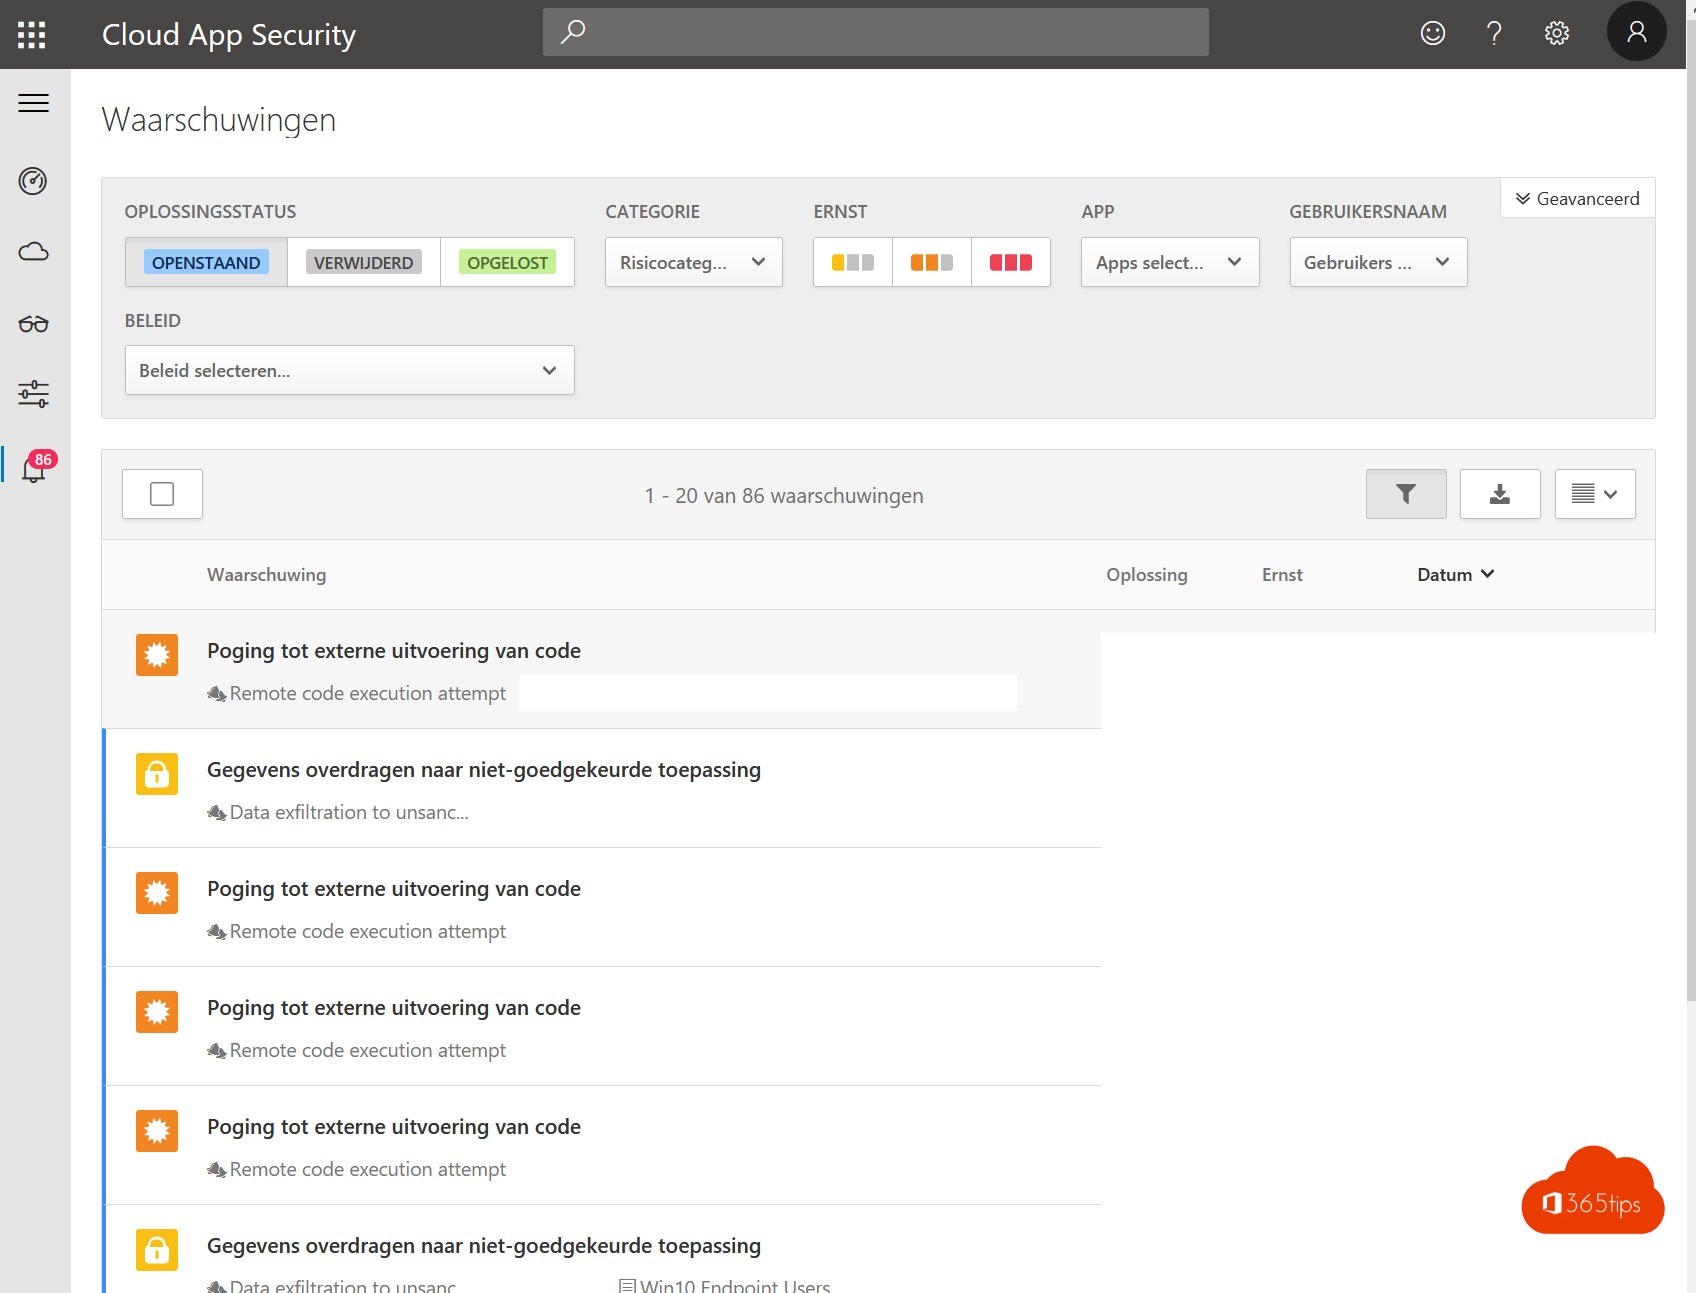 Cloud App Security automation